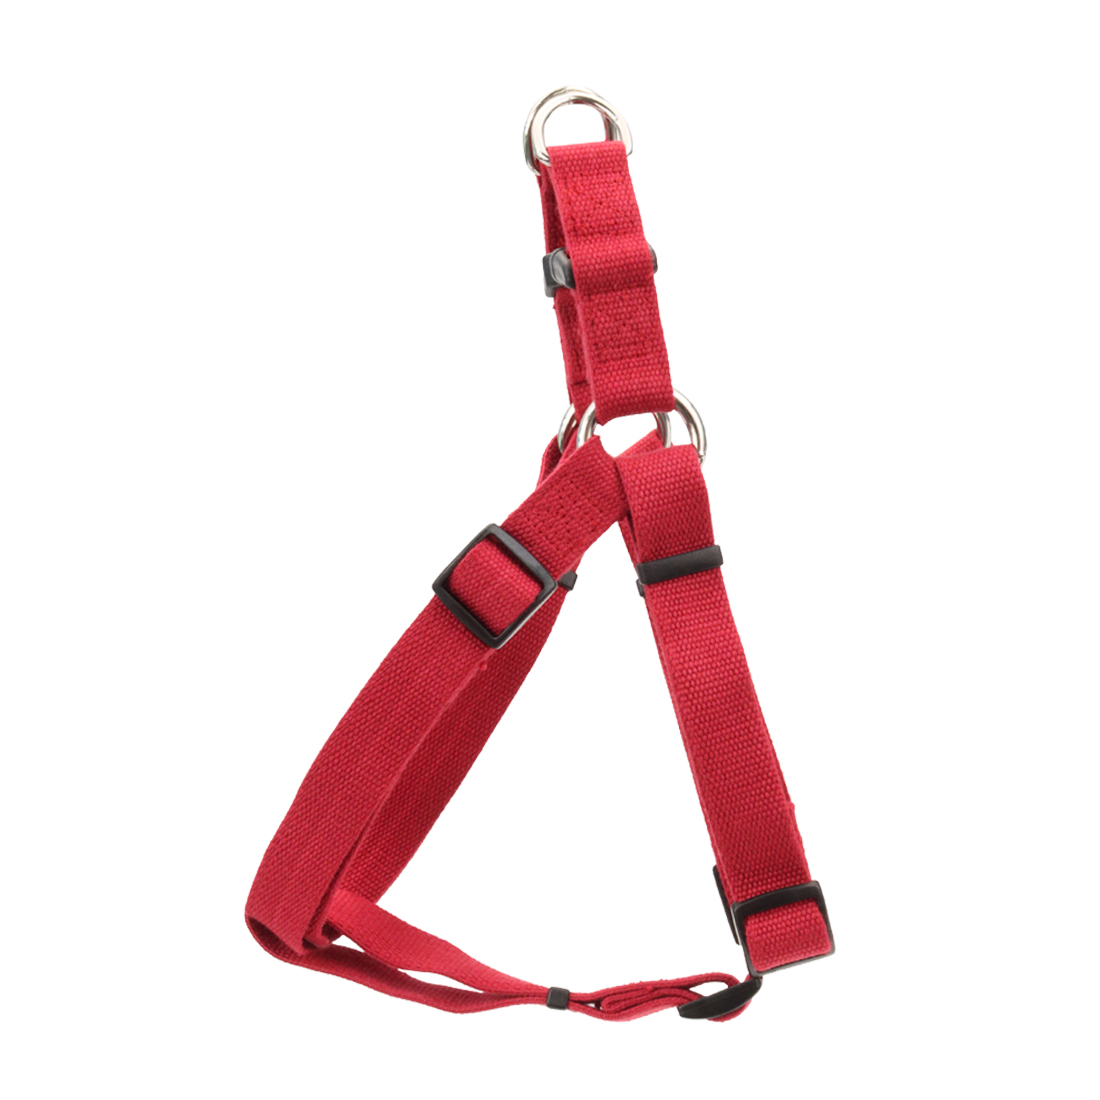 New Earth Soy Comfort Wrap Adjustable Dog Harness, Cranberry, 5/8-in X 16-24-in